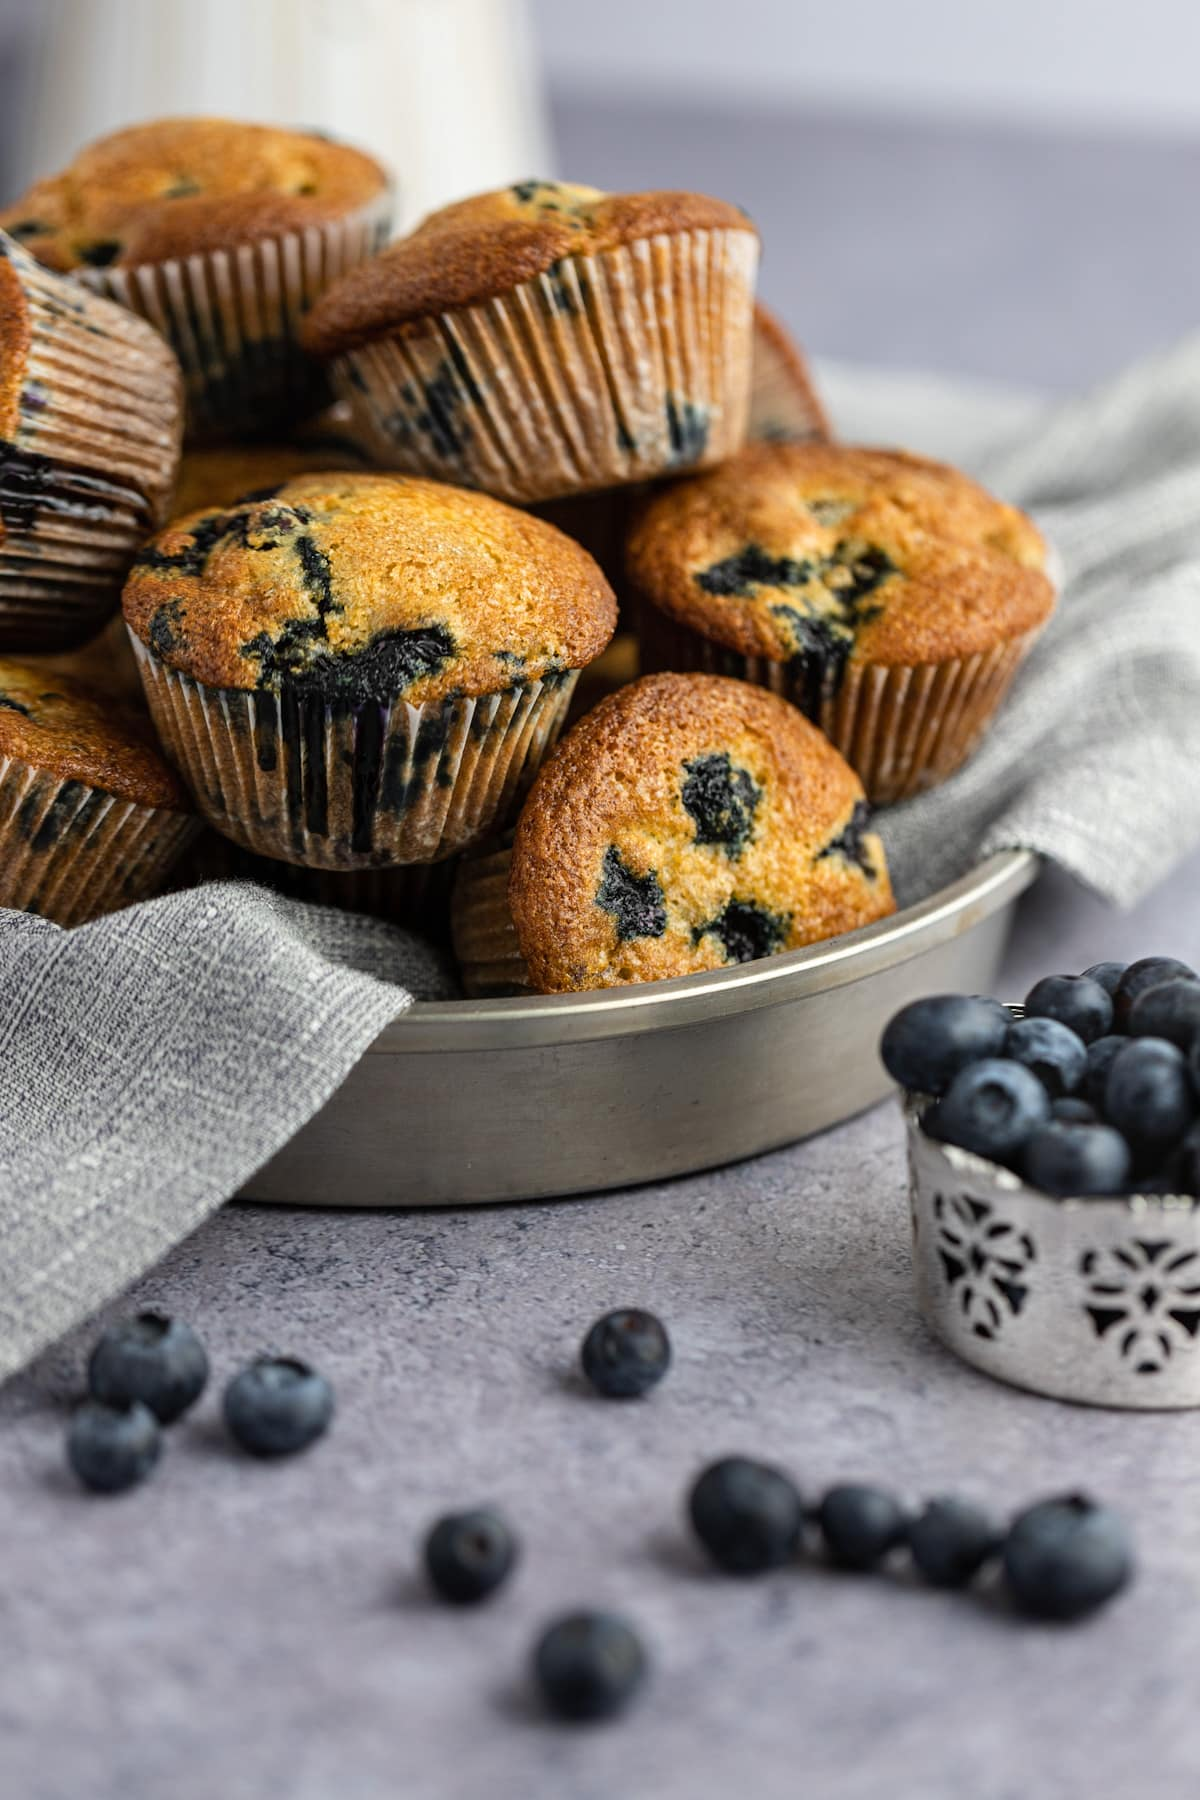 A pile of to die for blueberry muffins on a grey napkin in a round metal tin, with a silver pot of blueberries beside it and some blueberries scattered on the table.